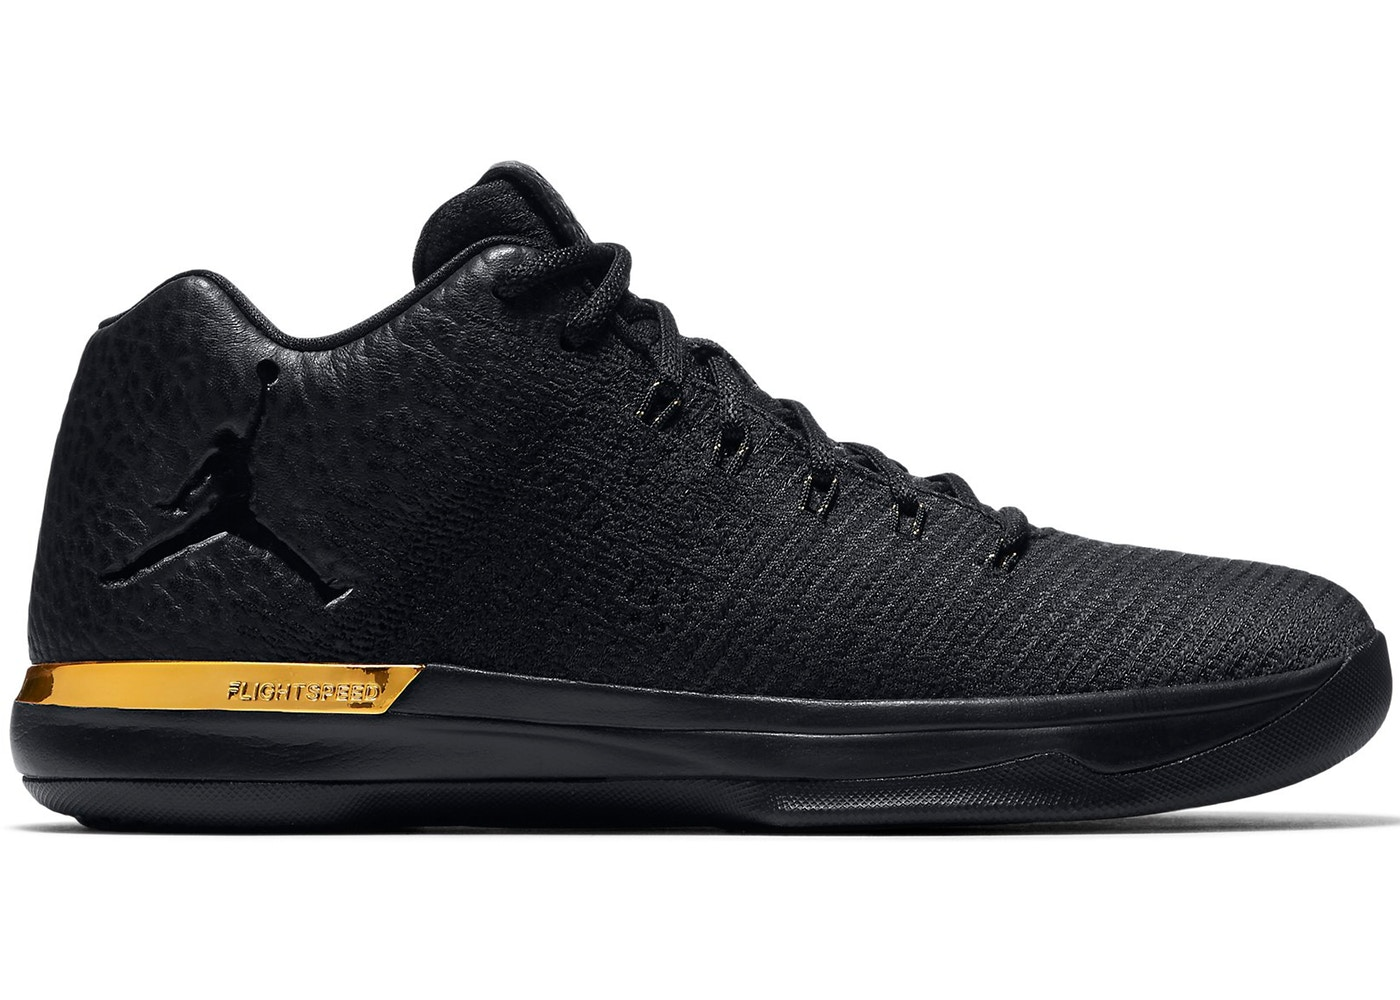 6e0fb32d1bce Jordan XXX1 Low Black Gold - 897564-023